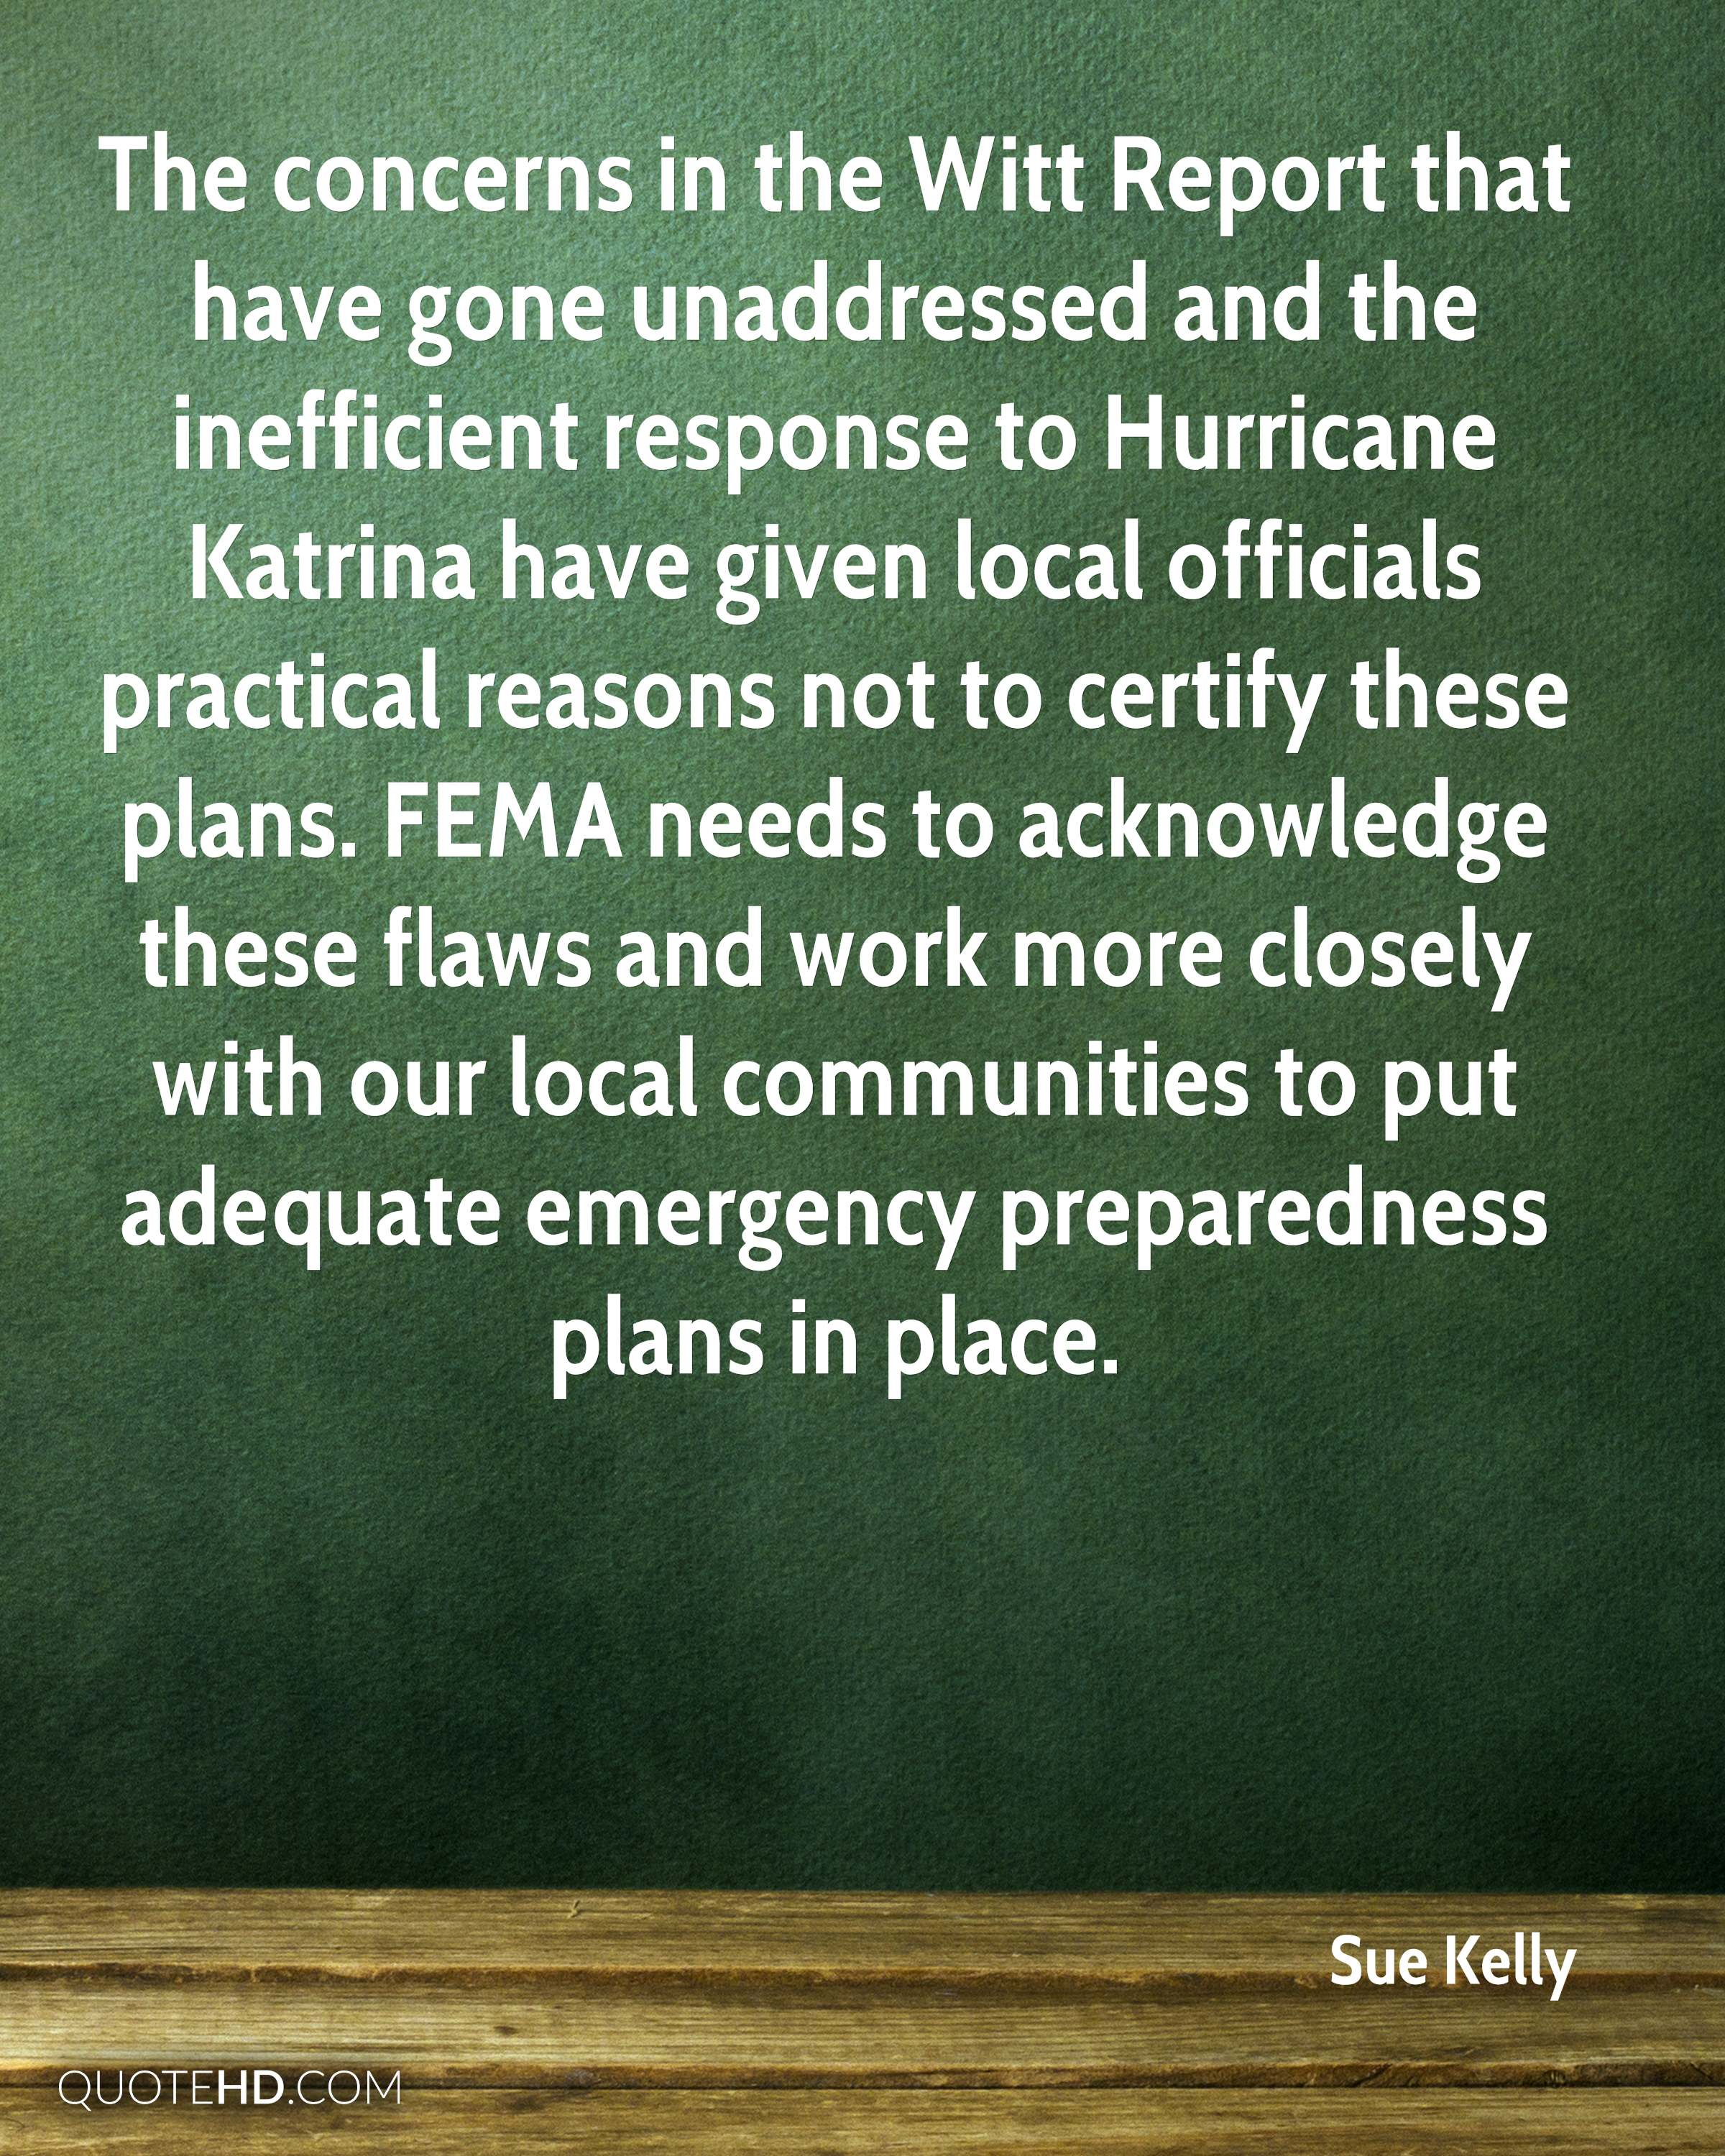 The concerns in the Witt Report that have gone unaddressed and the inefficient response to Hurricane Katrina have given local officials practical reasons not to certify these plans. FEMA needs to acknowledge these flaws and work more closely with our local communities to put adequate emergency preparedness plans in place.